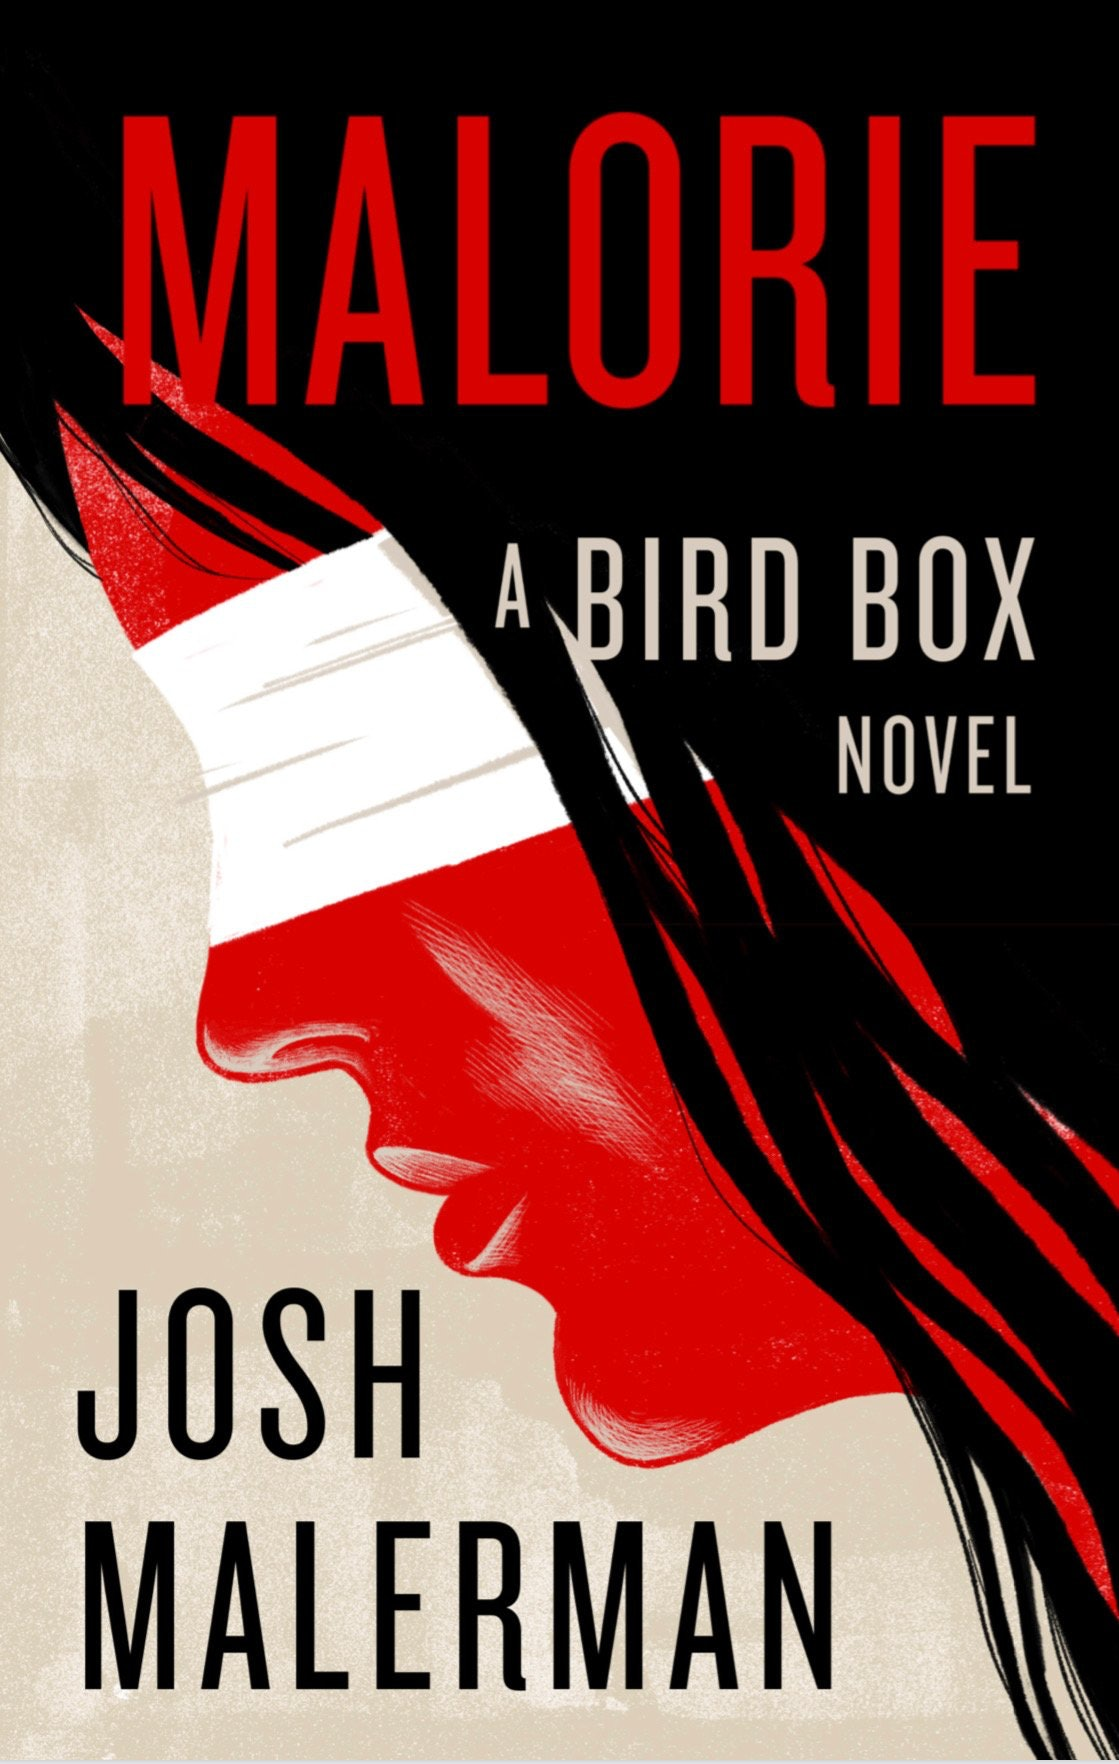 Image result for malorie a bird box novel